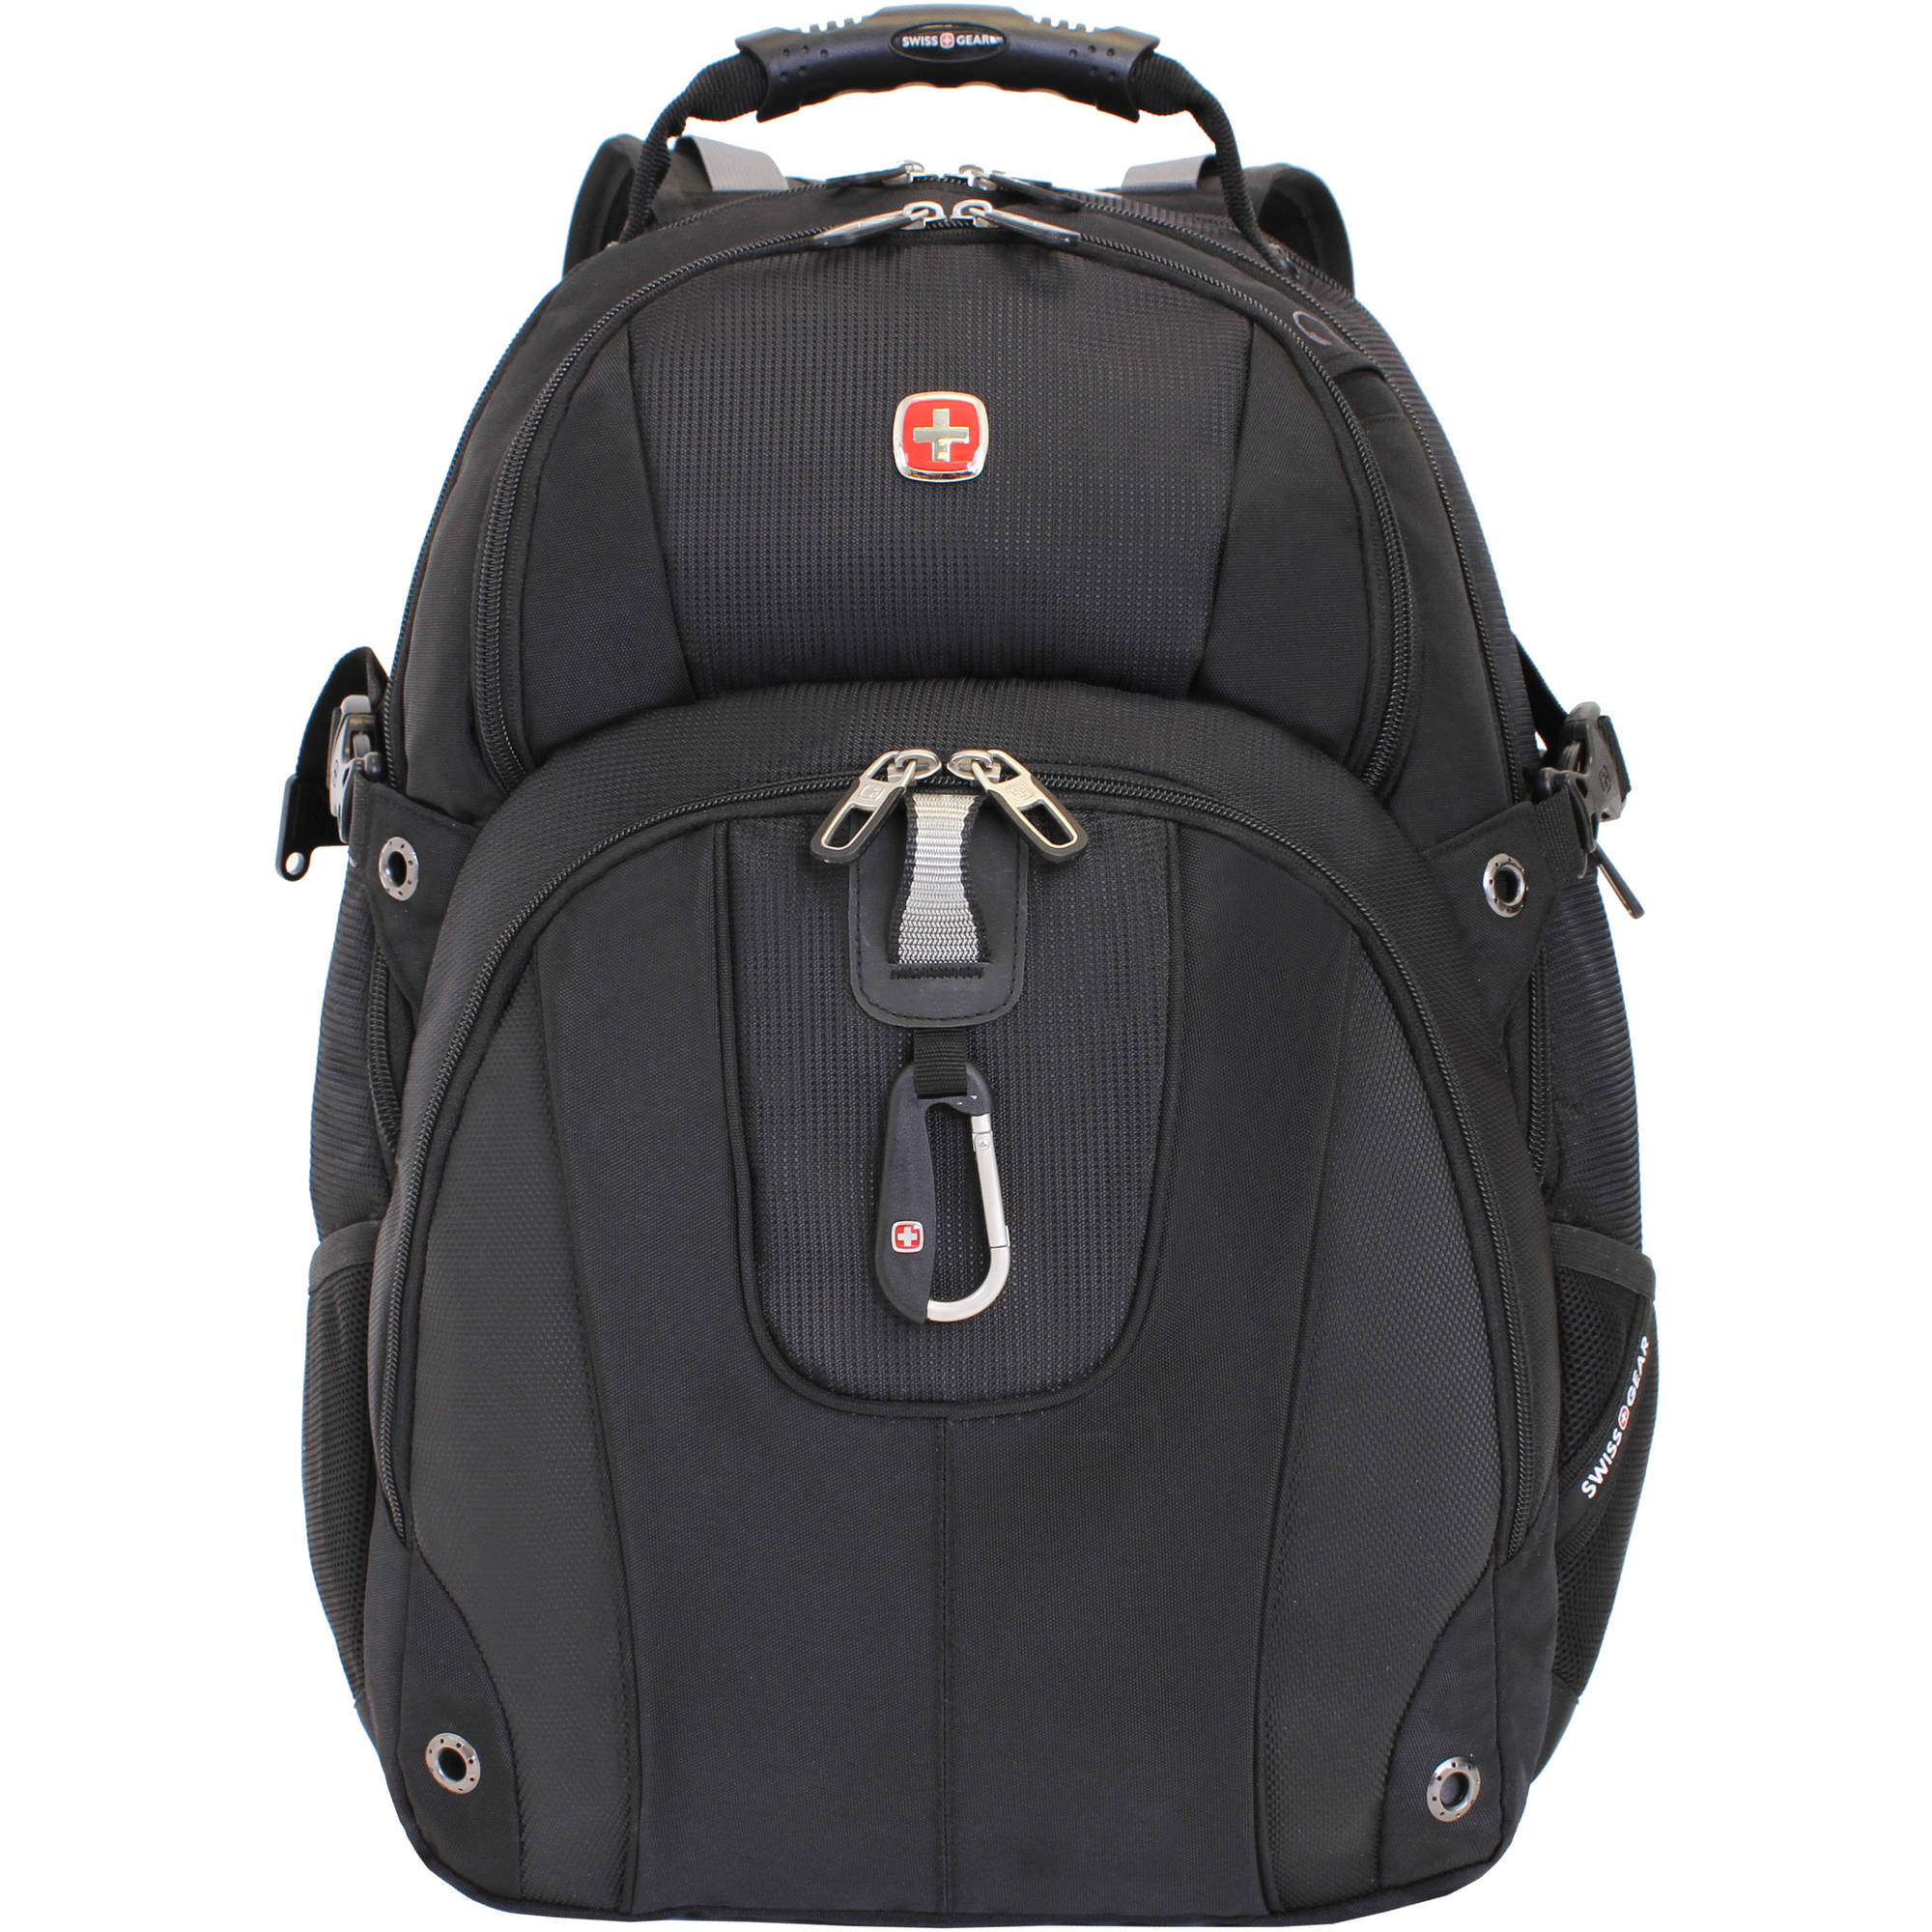 Swiss Gear Cobalt Computer Backpack FjBLuF2V